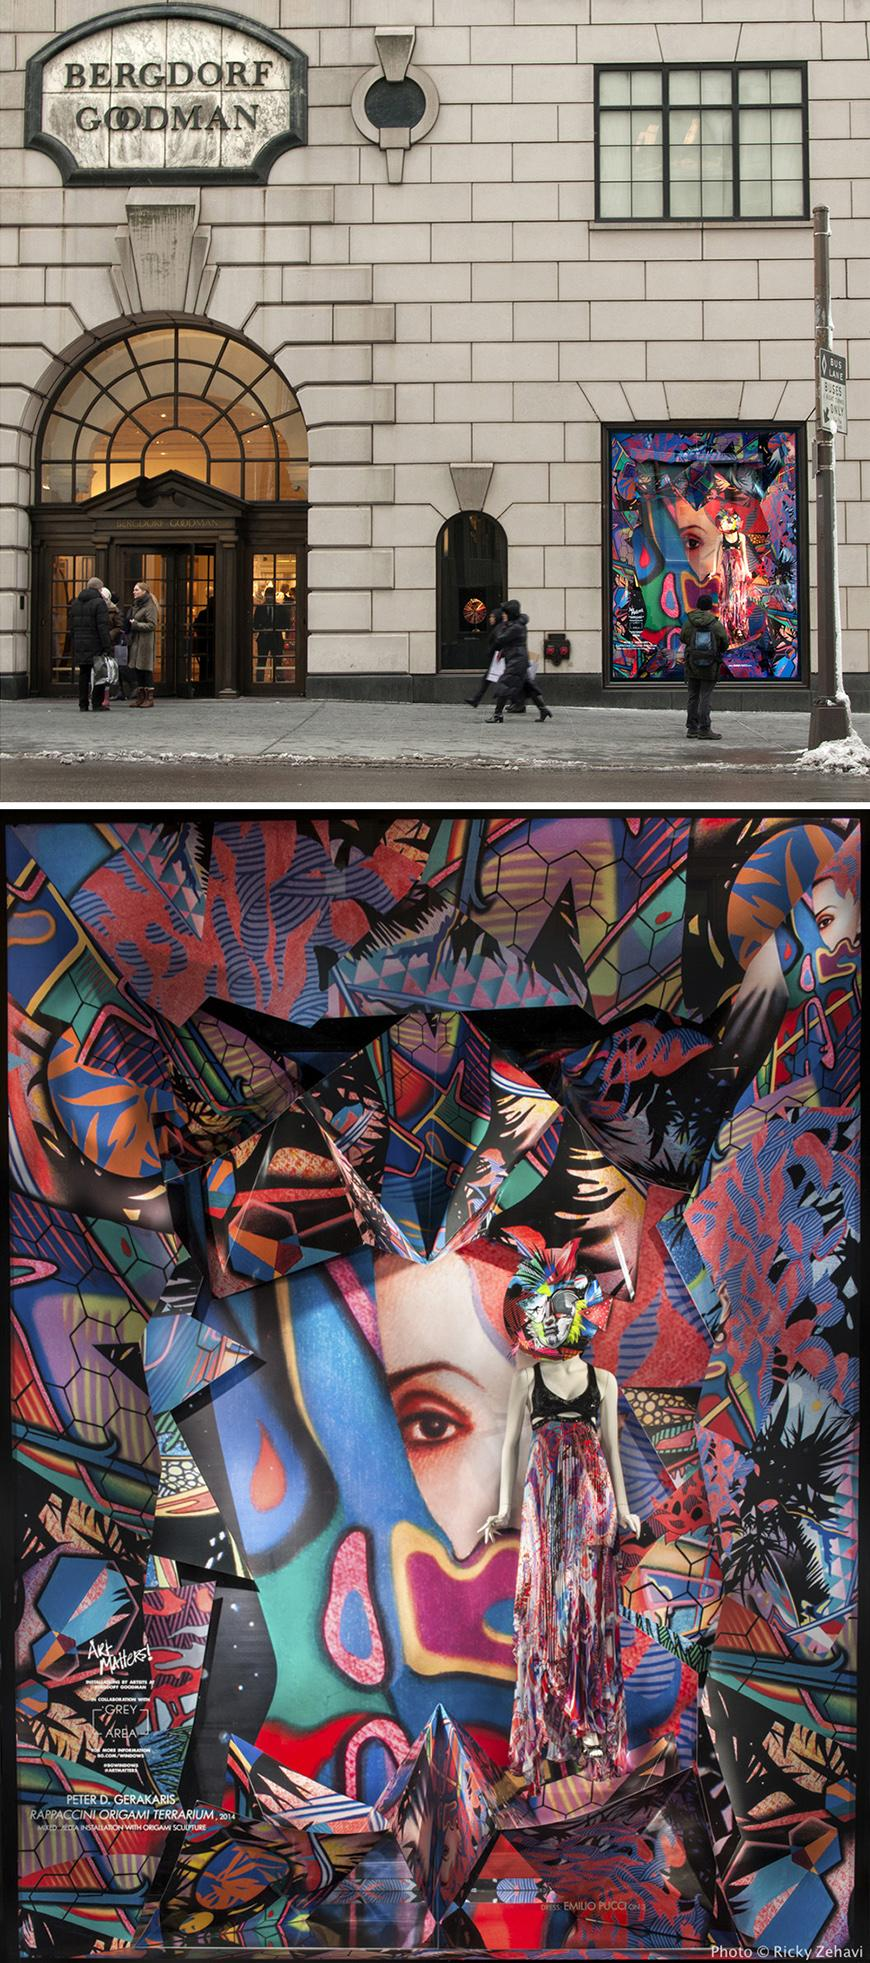 two images: exterior of Bergdorf Goodman store and a vibrant abstract multimedia artwork